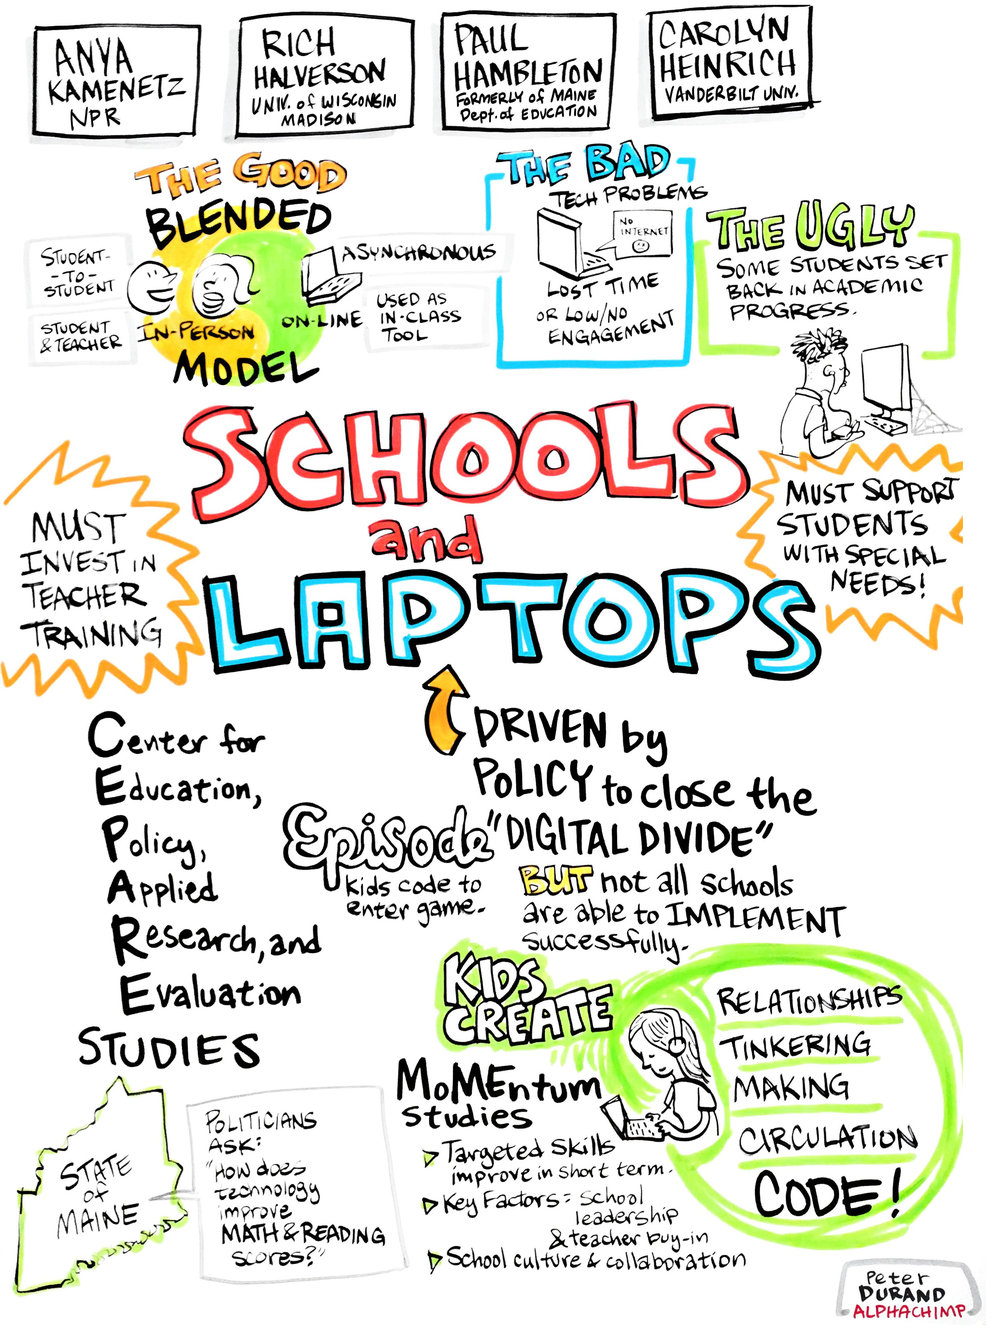 Technology and Laptops in Schools